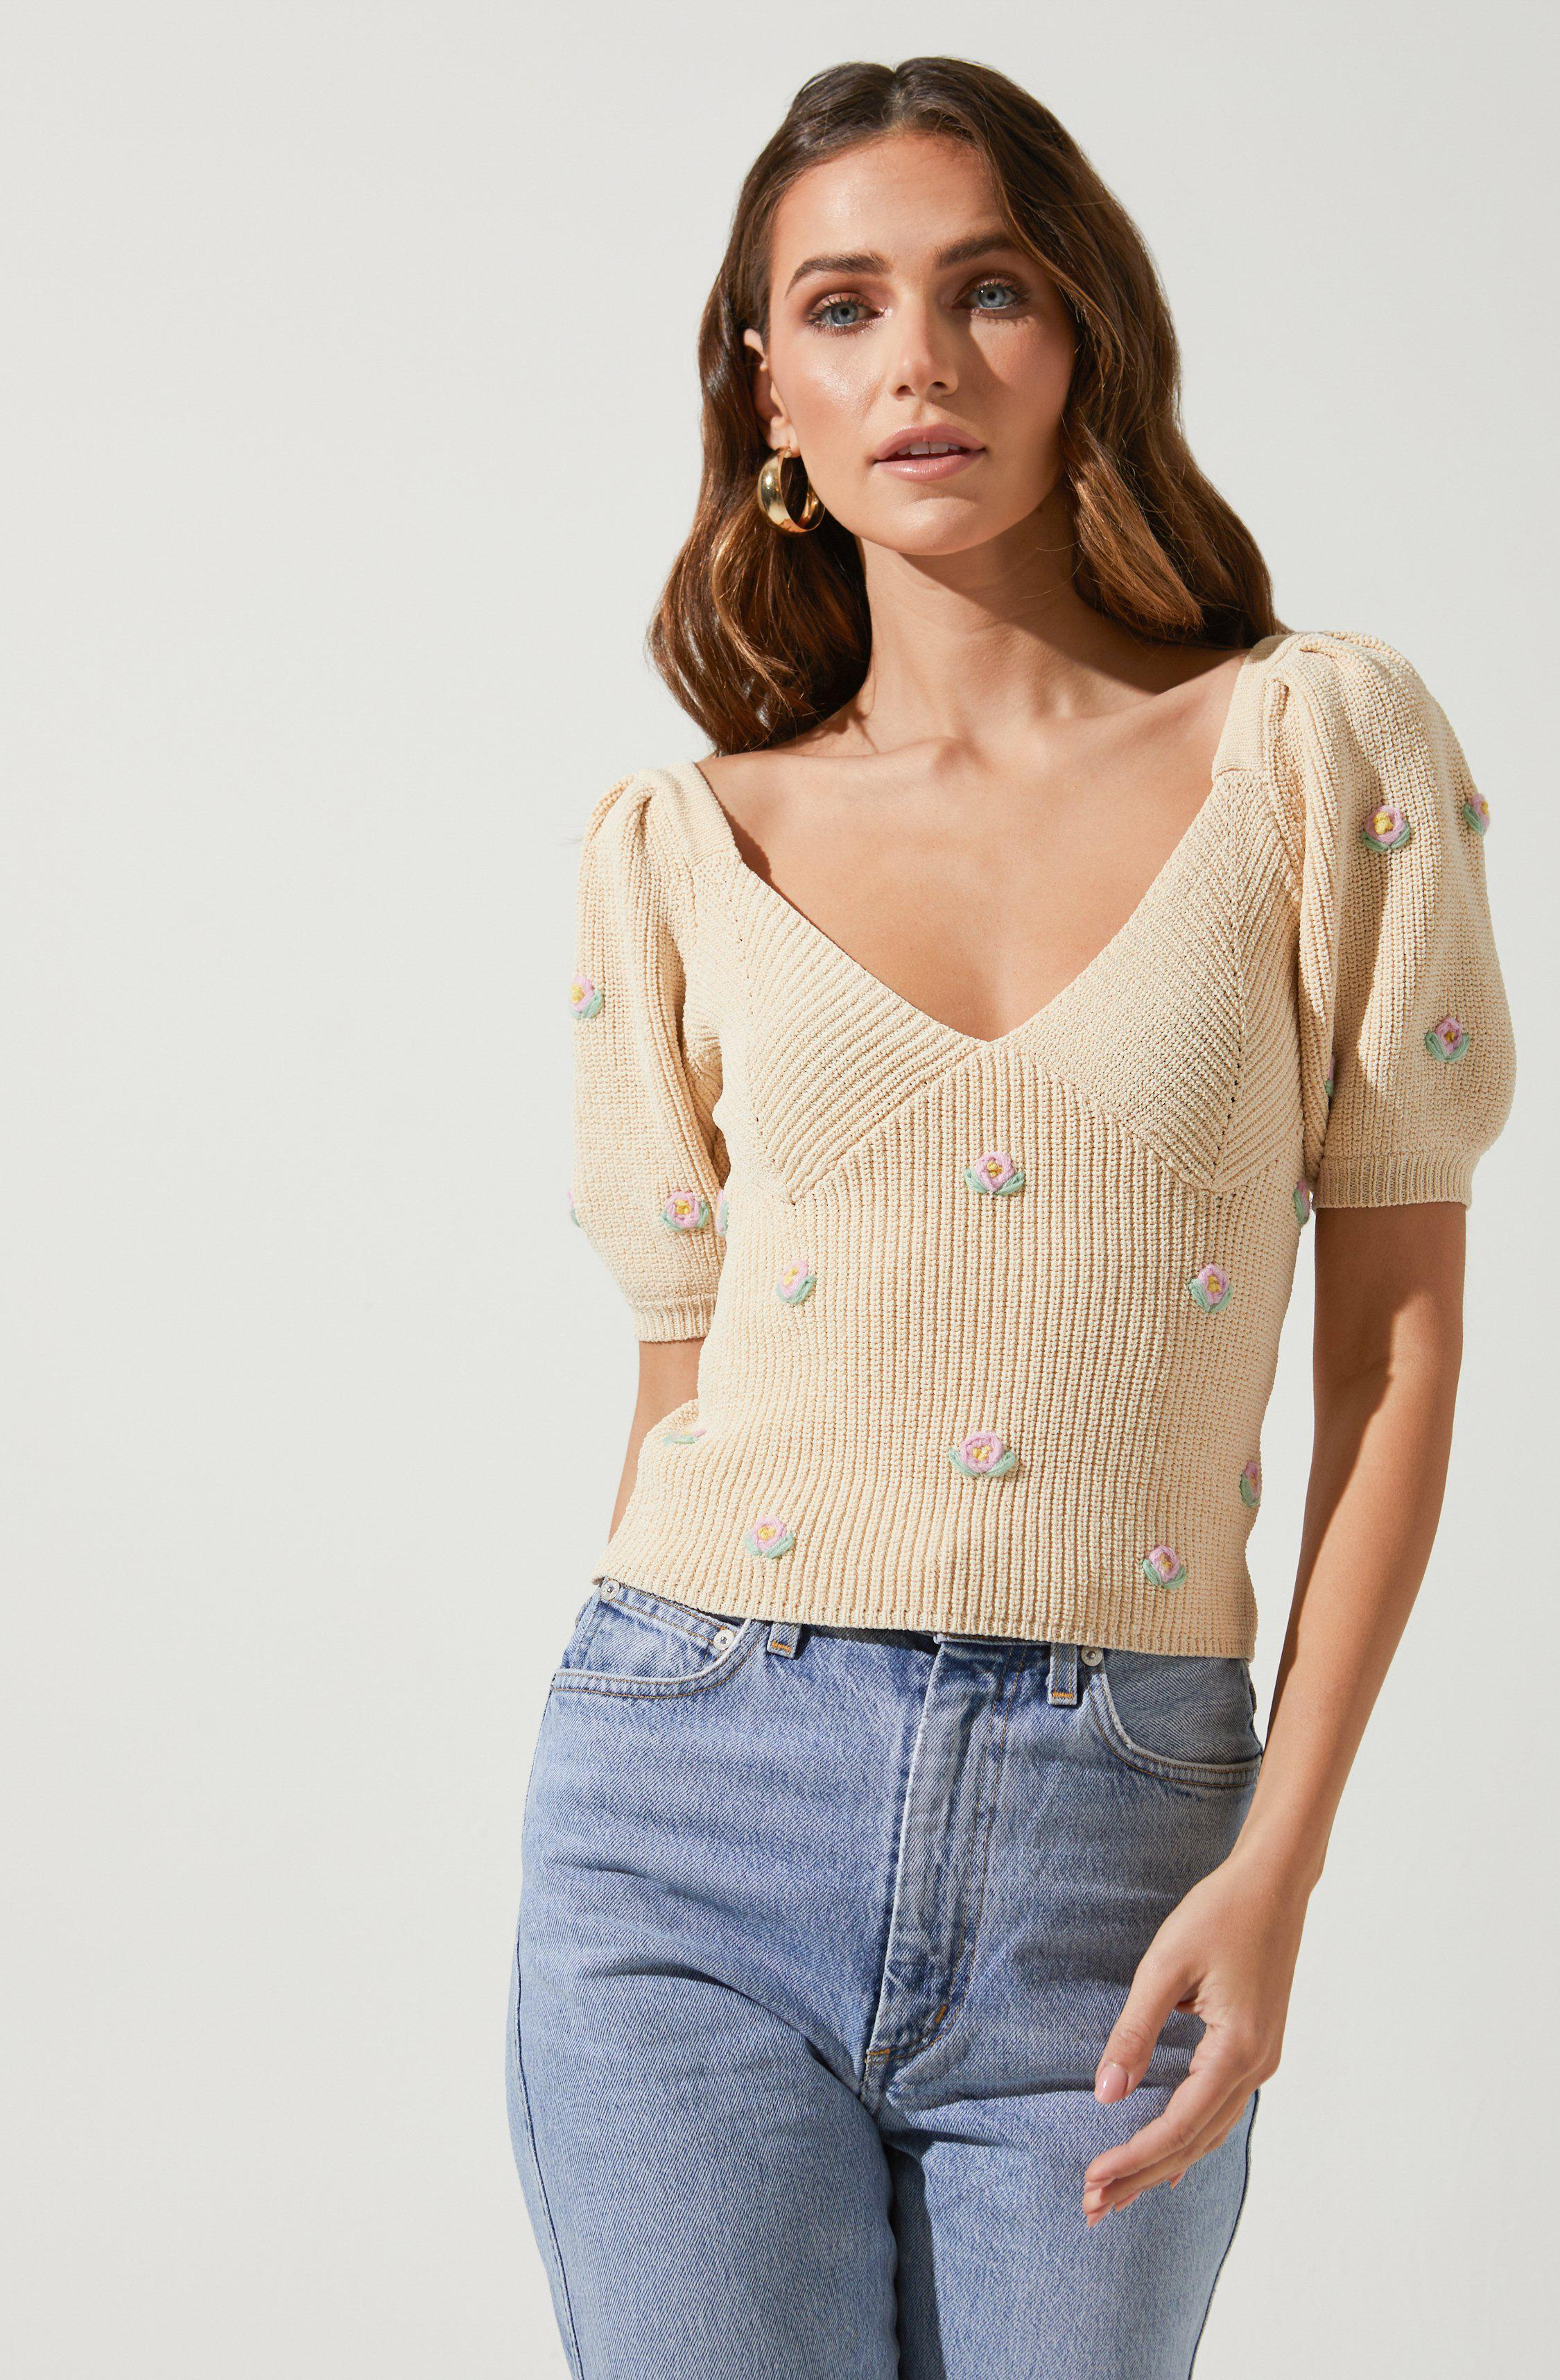 Bria Floral Embroidered Sweater